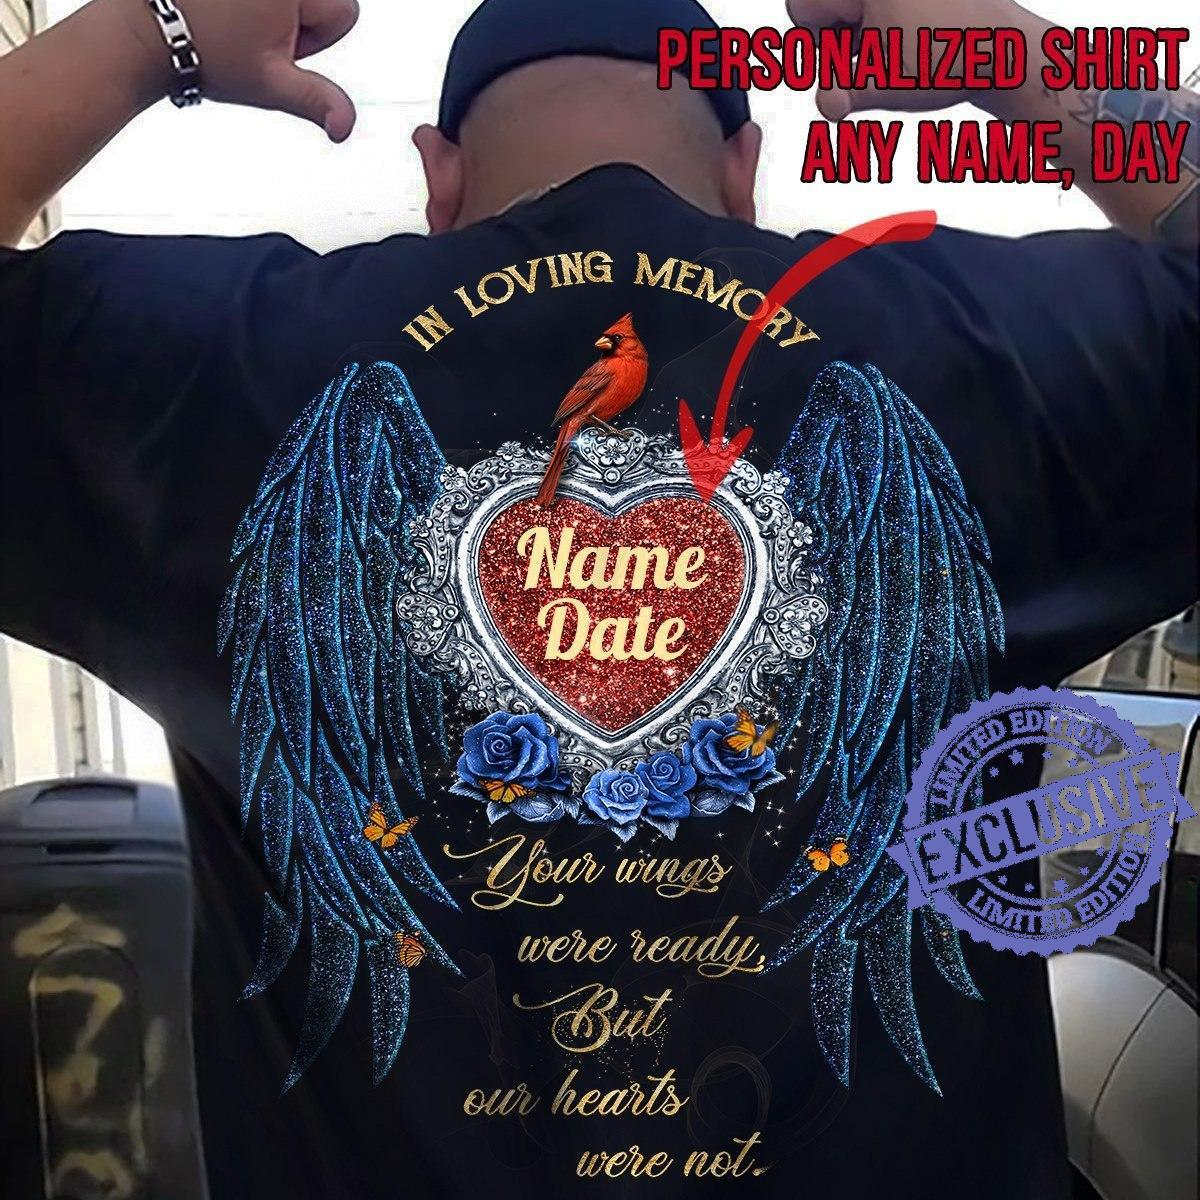 In loving memory name date your wings were ready but our hearts were not shirt